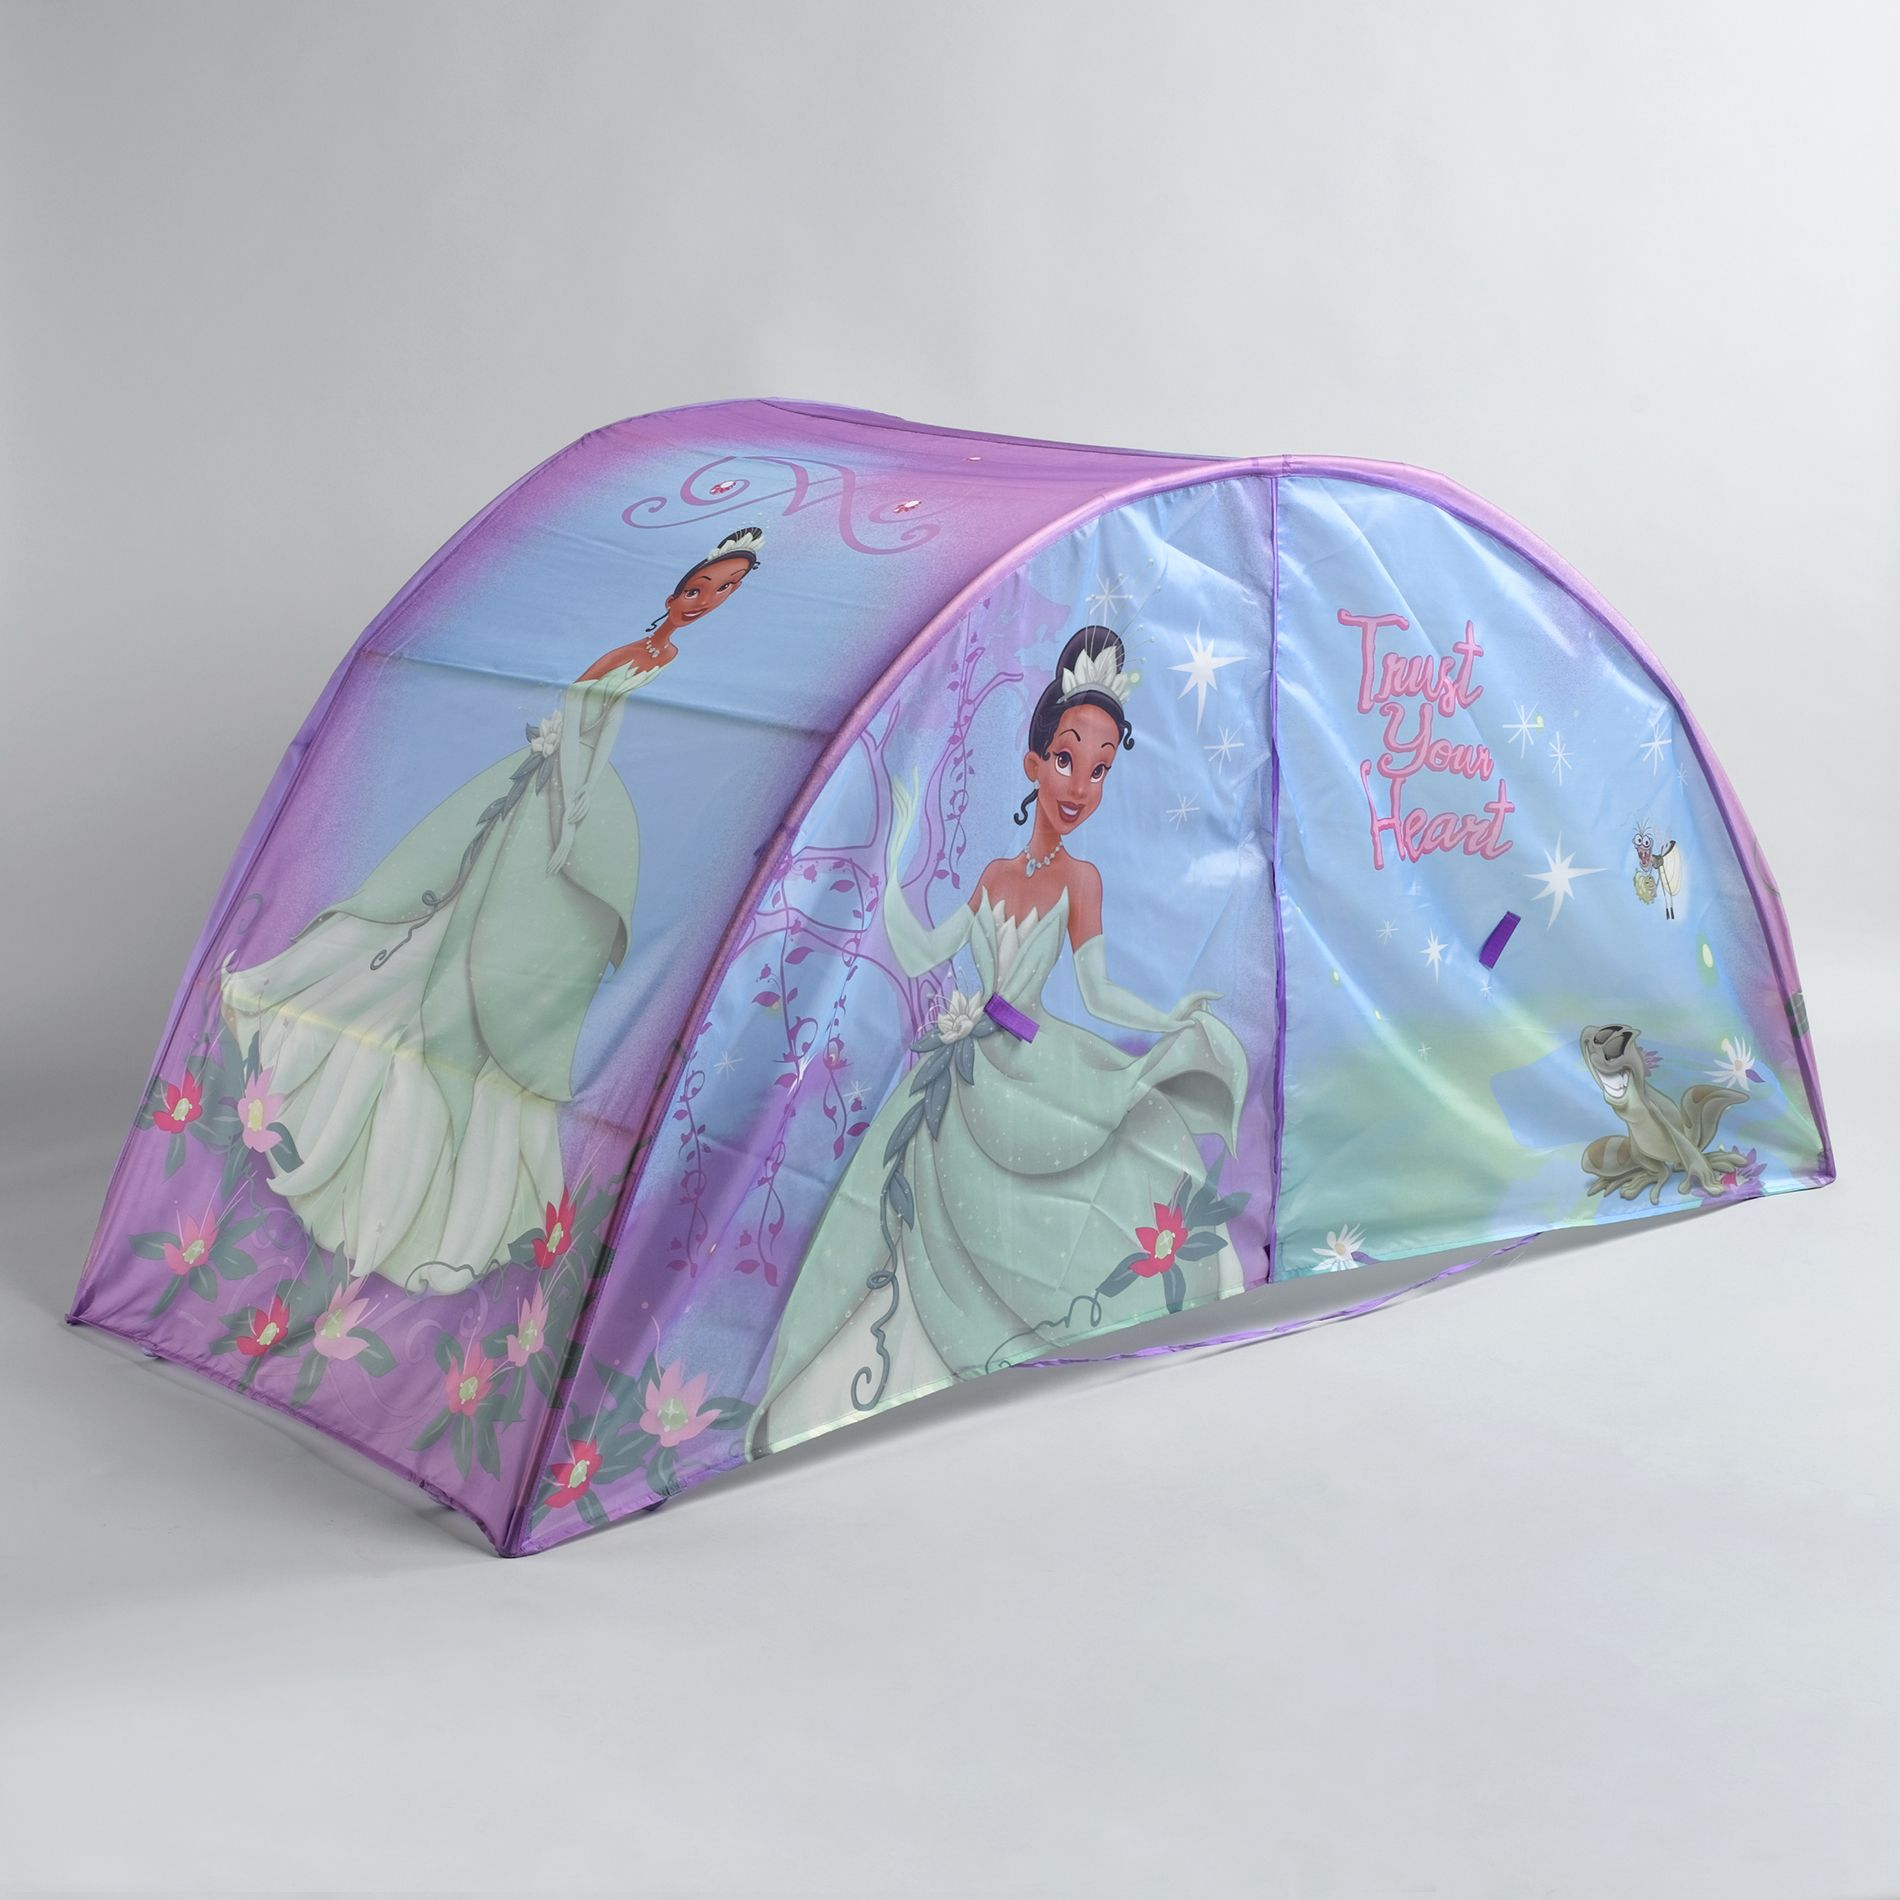 Princess and the Frog Bed Tent